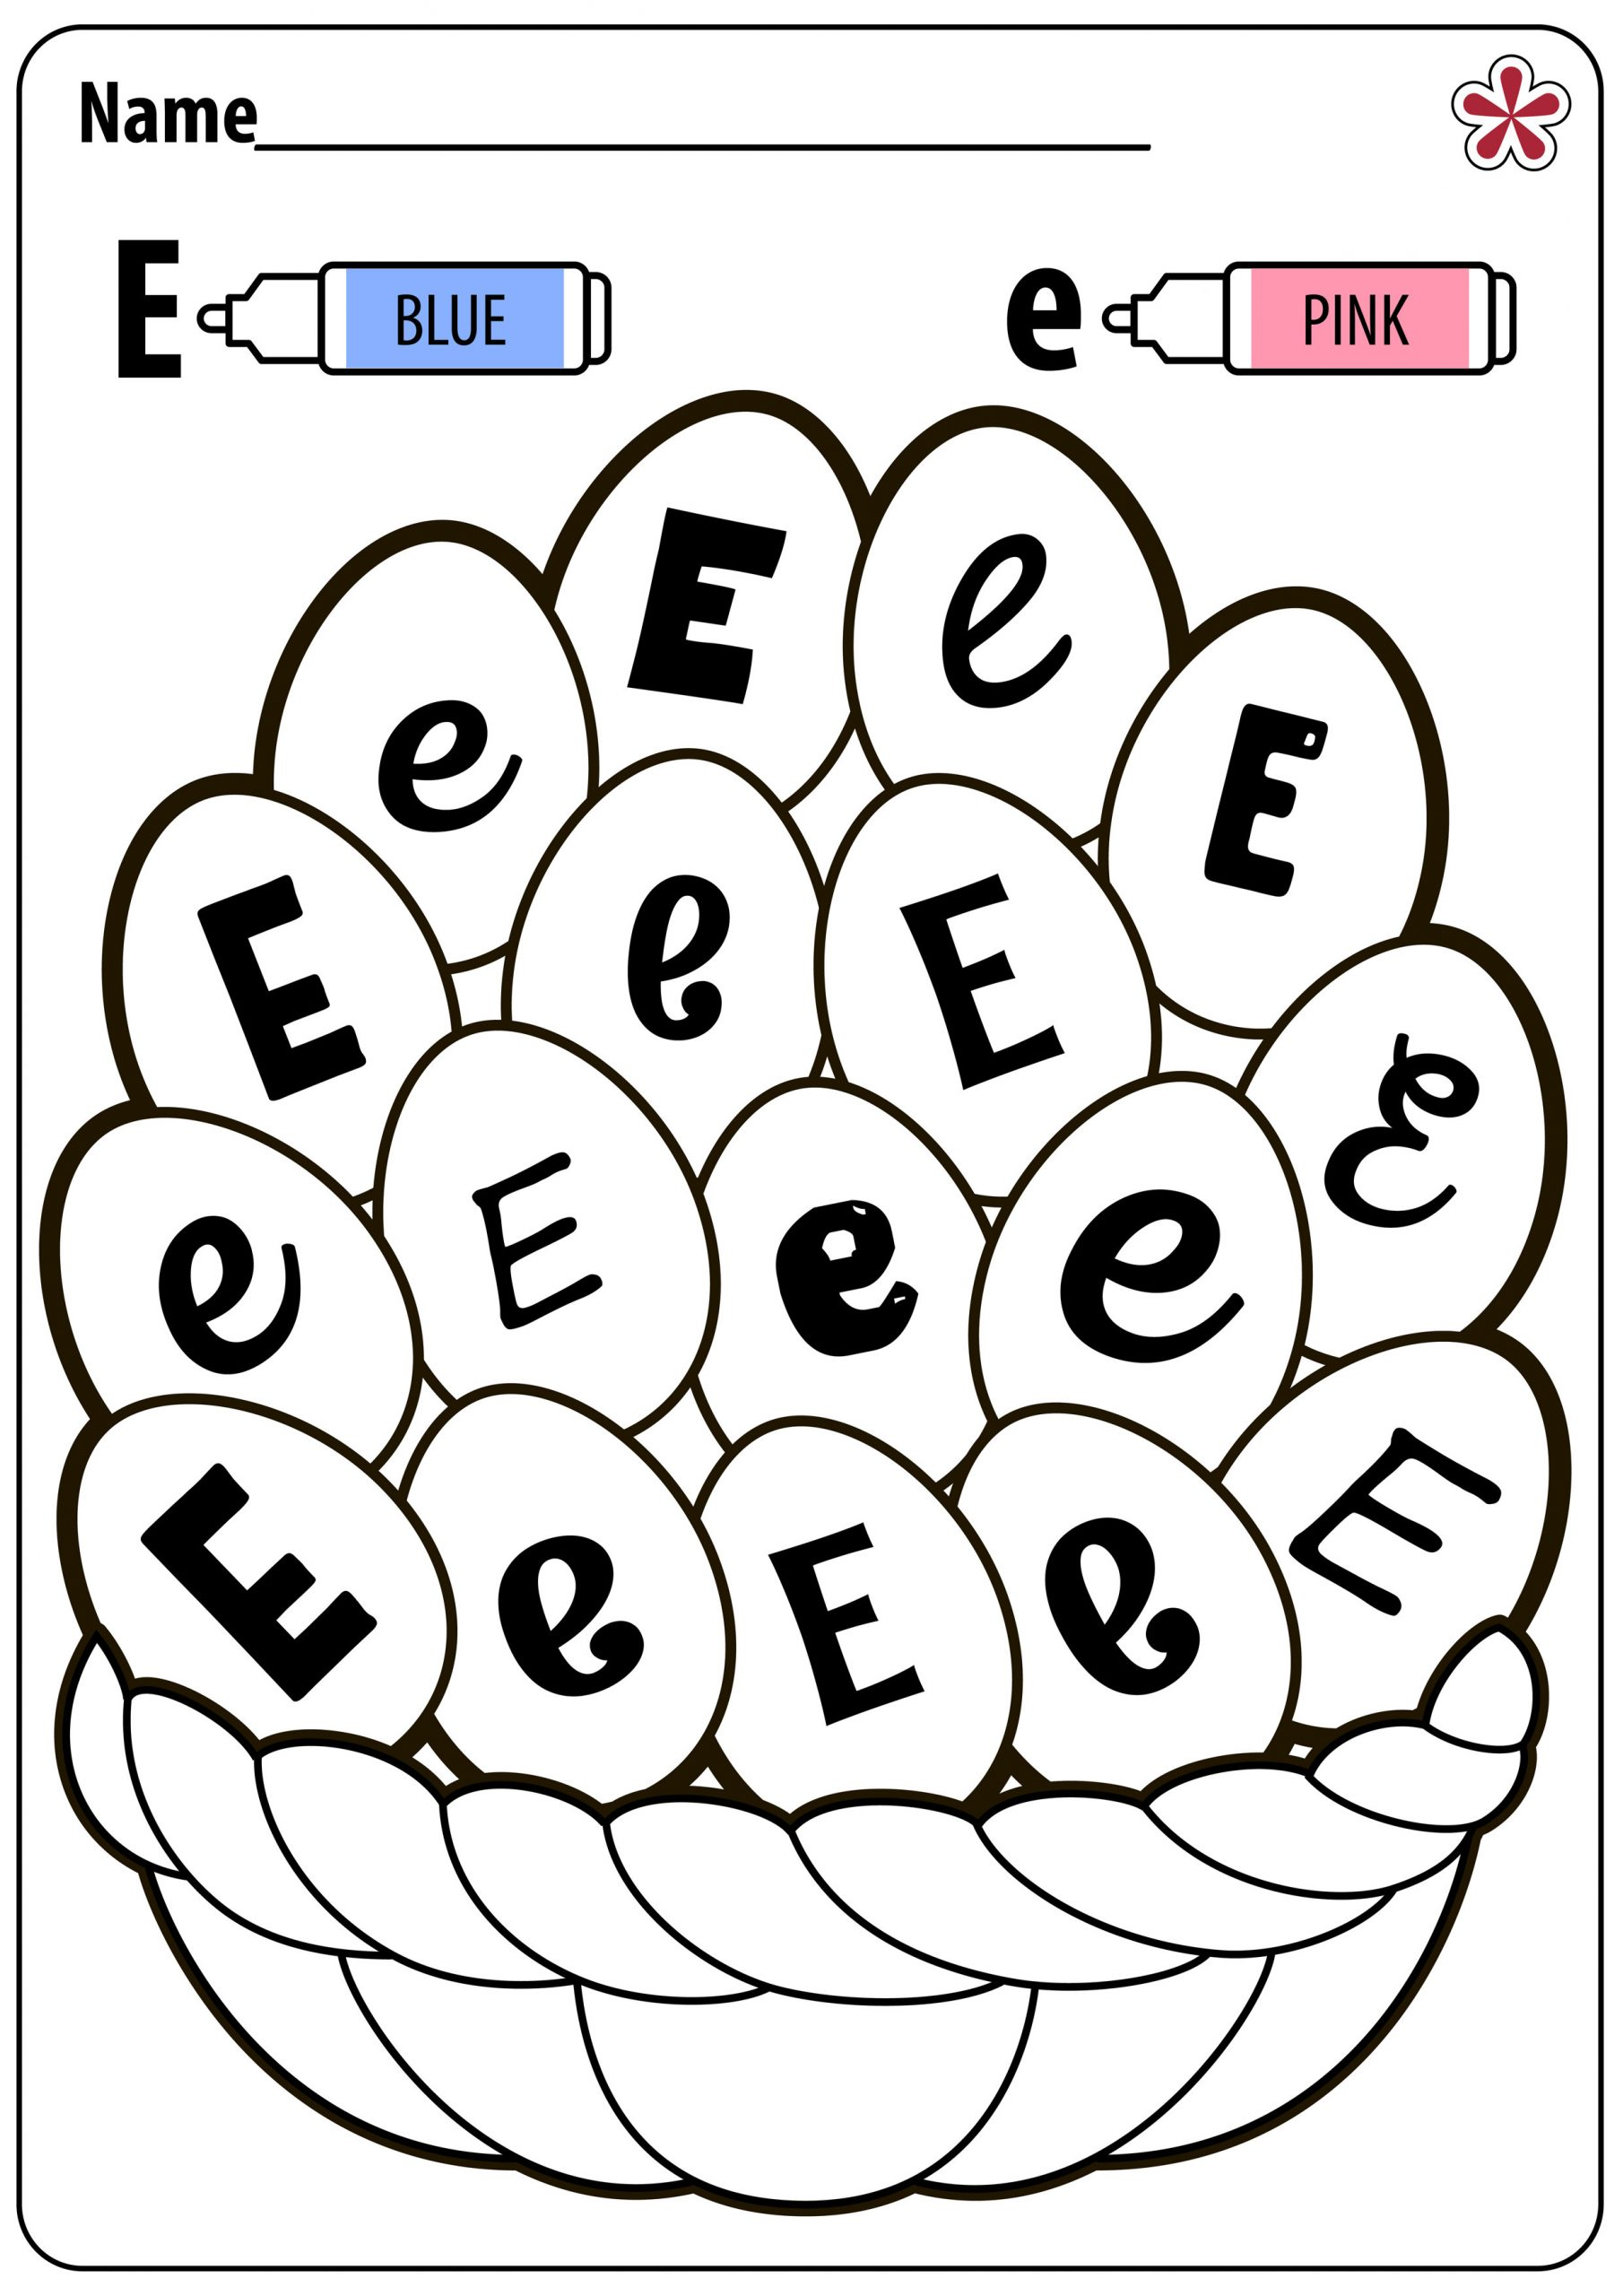 The Letter E Worksheet Letter E Worksheets for Kindergarten and Preschool